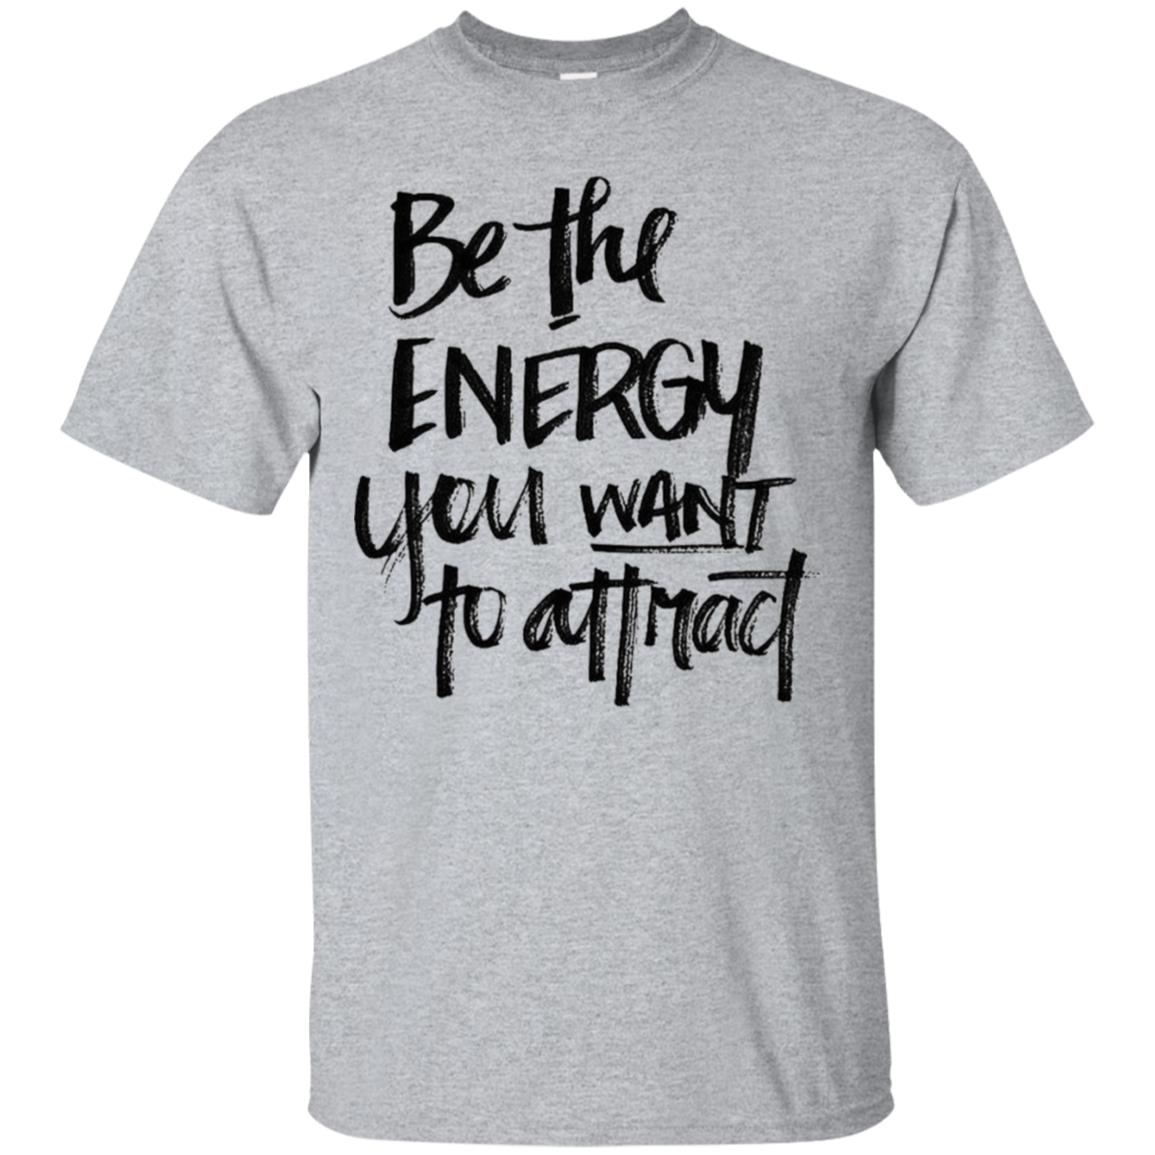 Be the Energy You Want to Attract T-Shirt! 99promocode